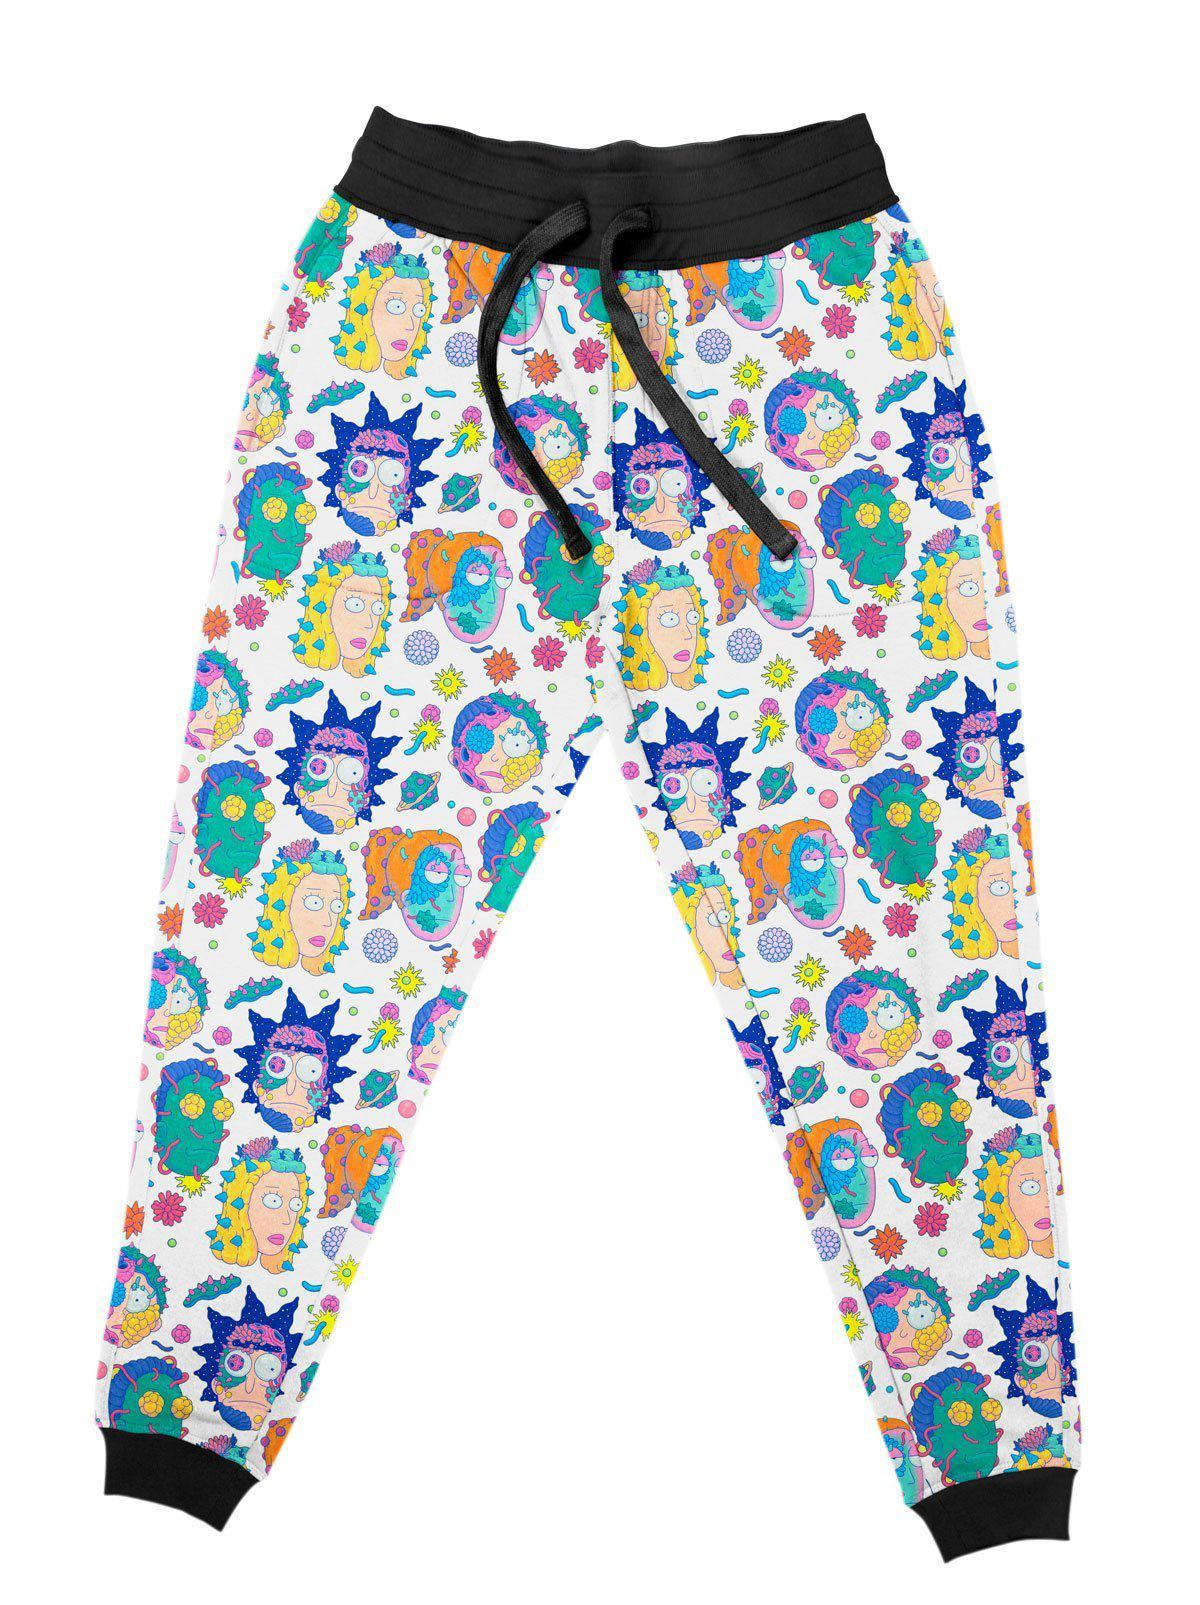 Infected Smith Family Joggers Jogger Pant Electro Threads